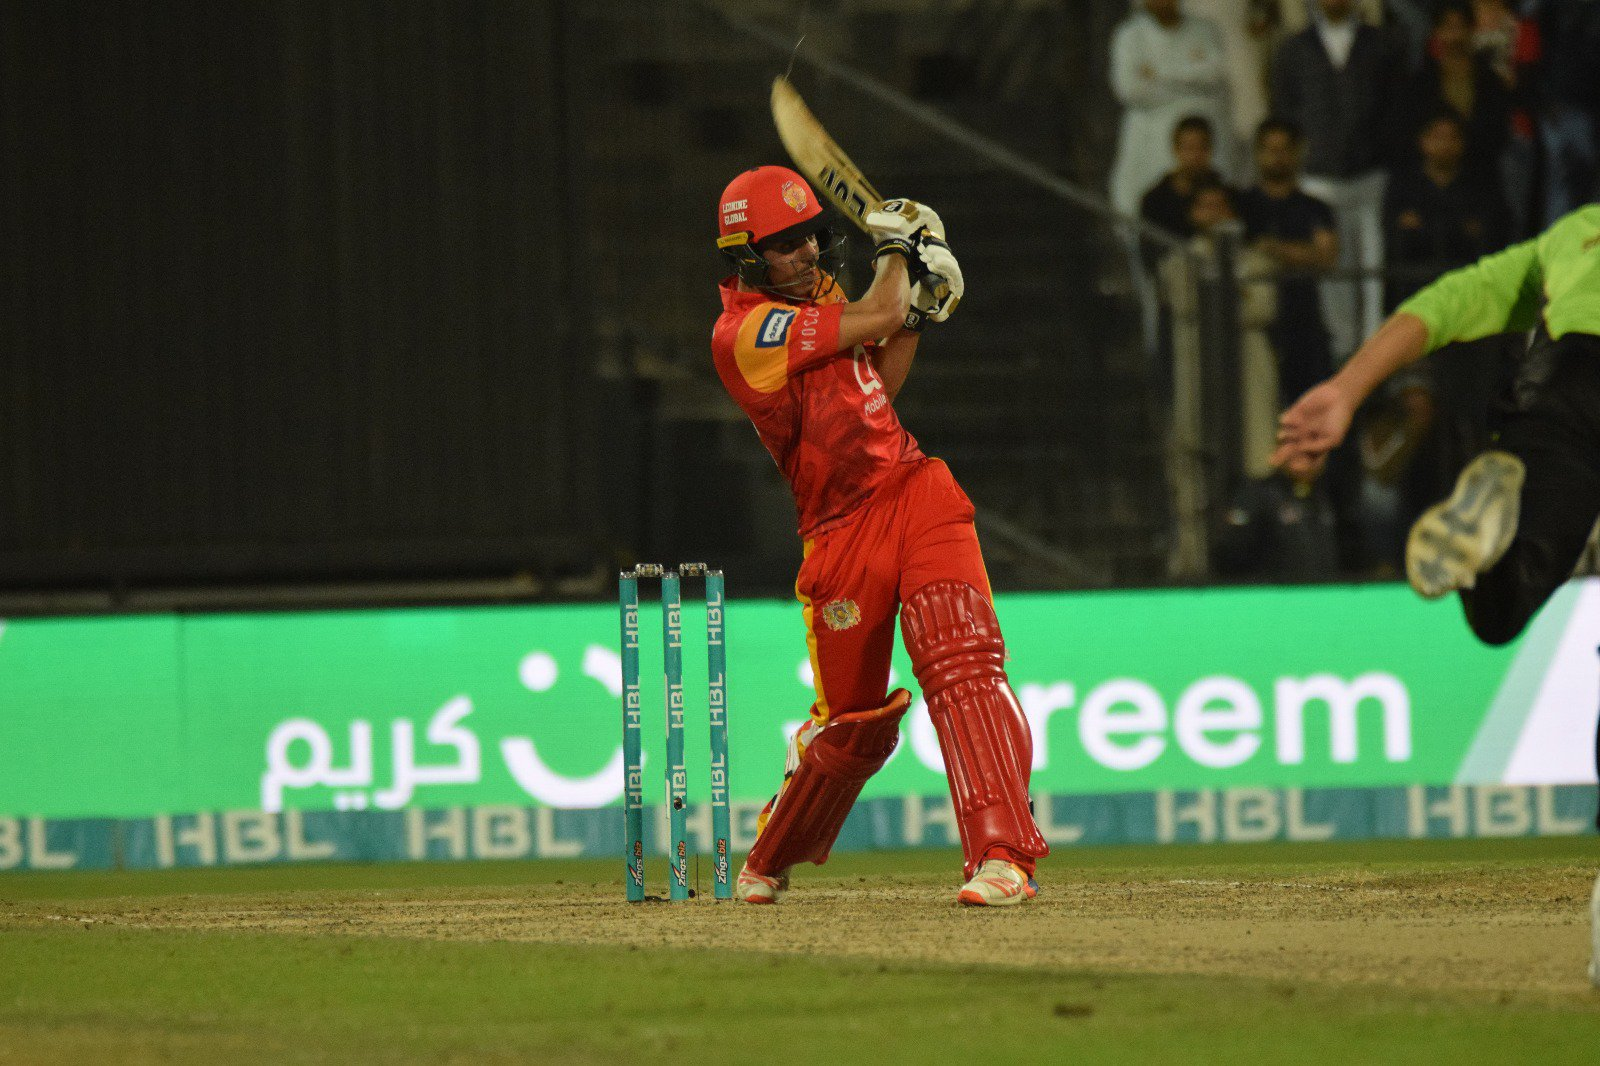 The middle-class tape-ball cricketer that is living the dream of millions in the country. PHOTO COURTESY: PSL